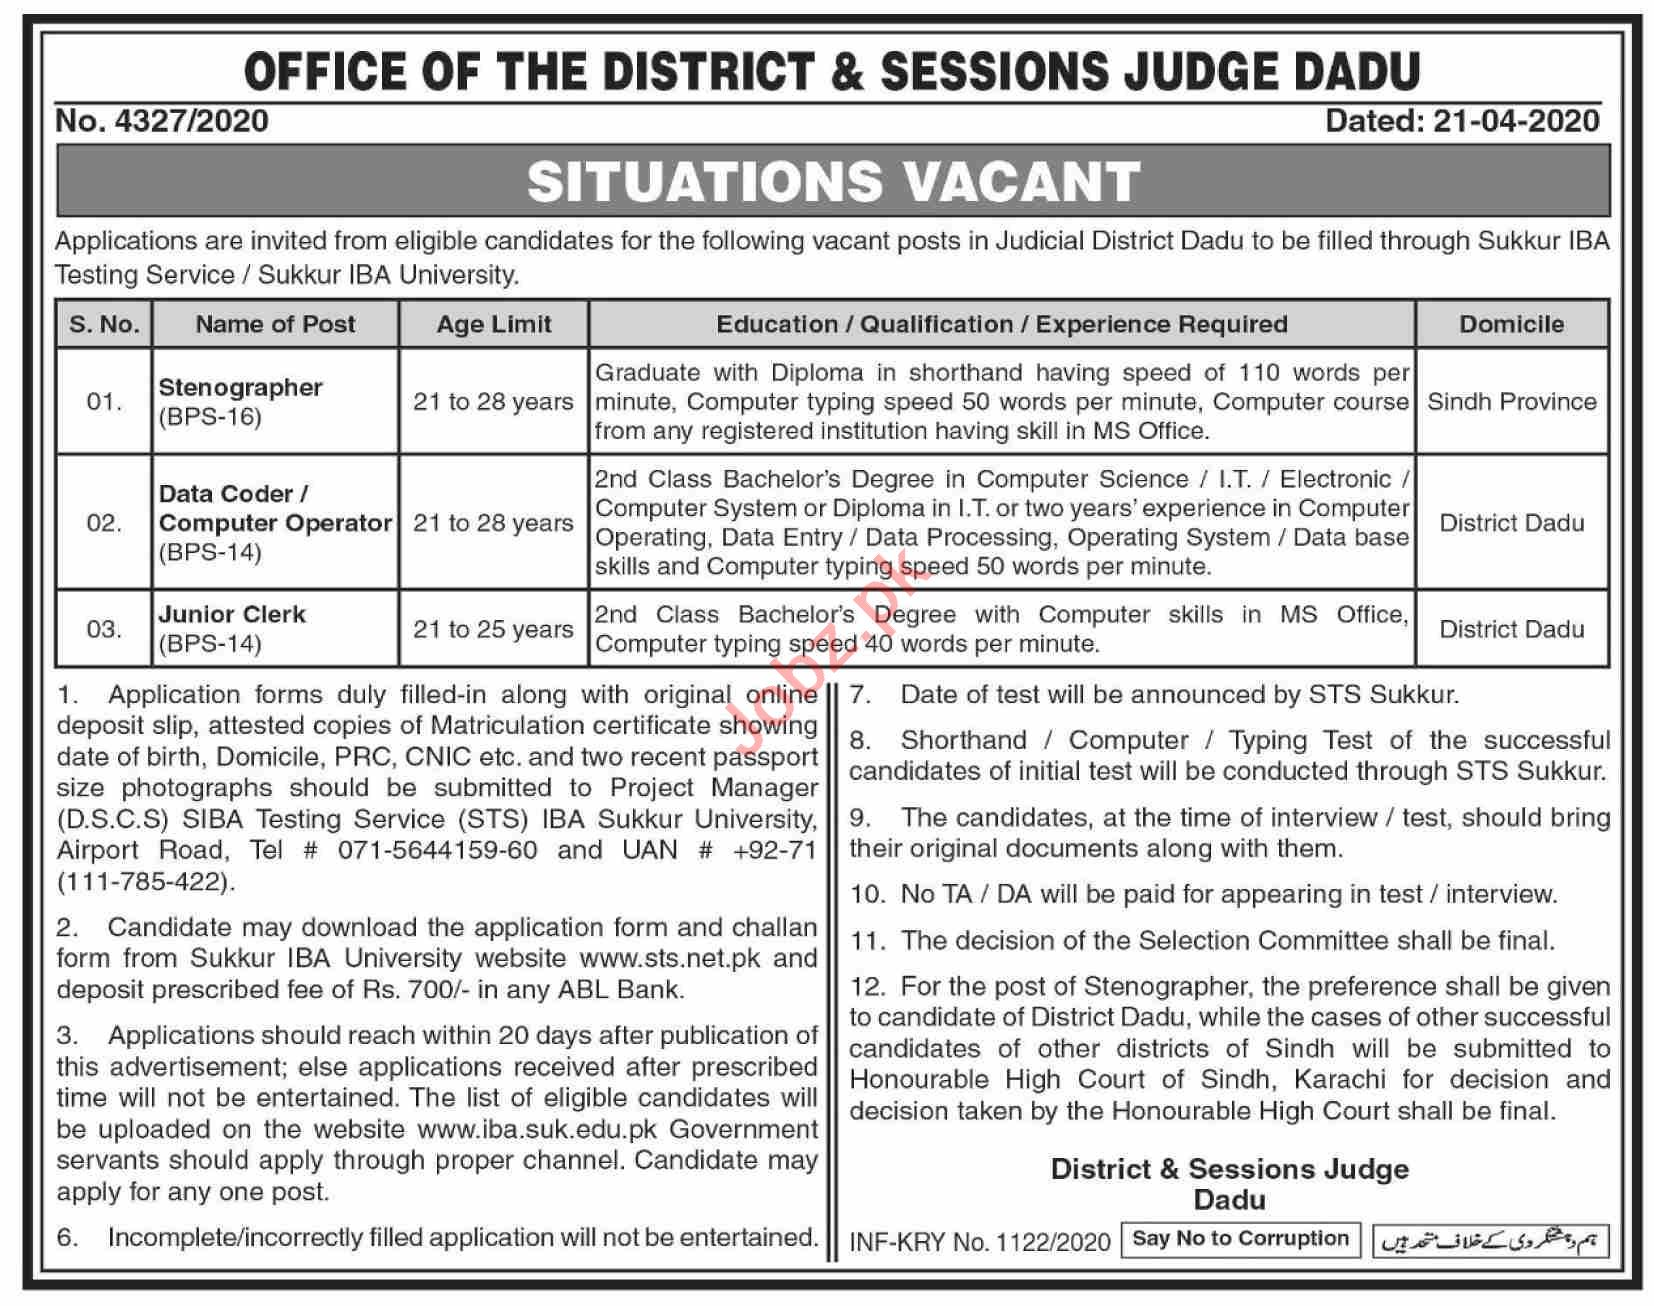 District & Session Court Dadu Jobs 2020 for Data Coder